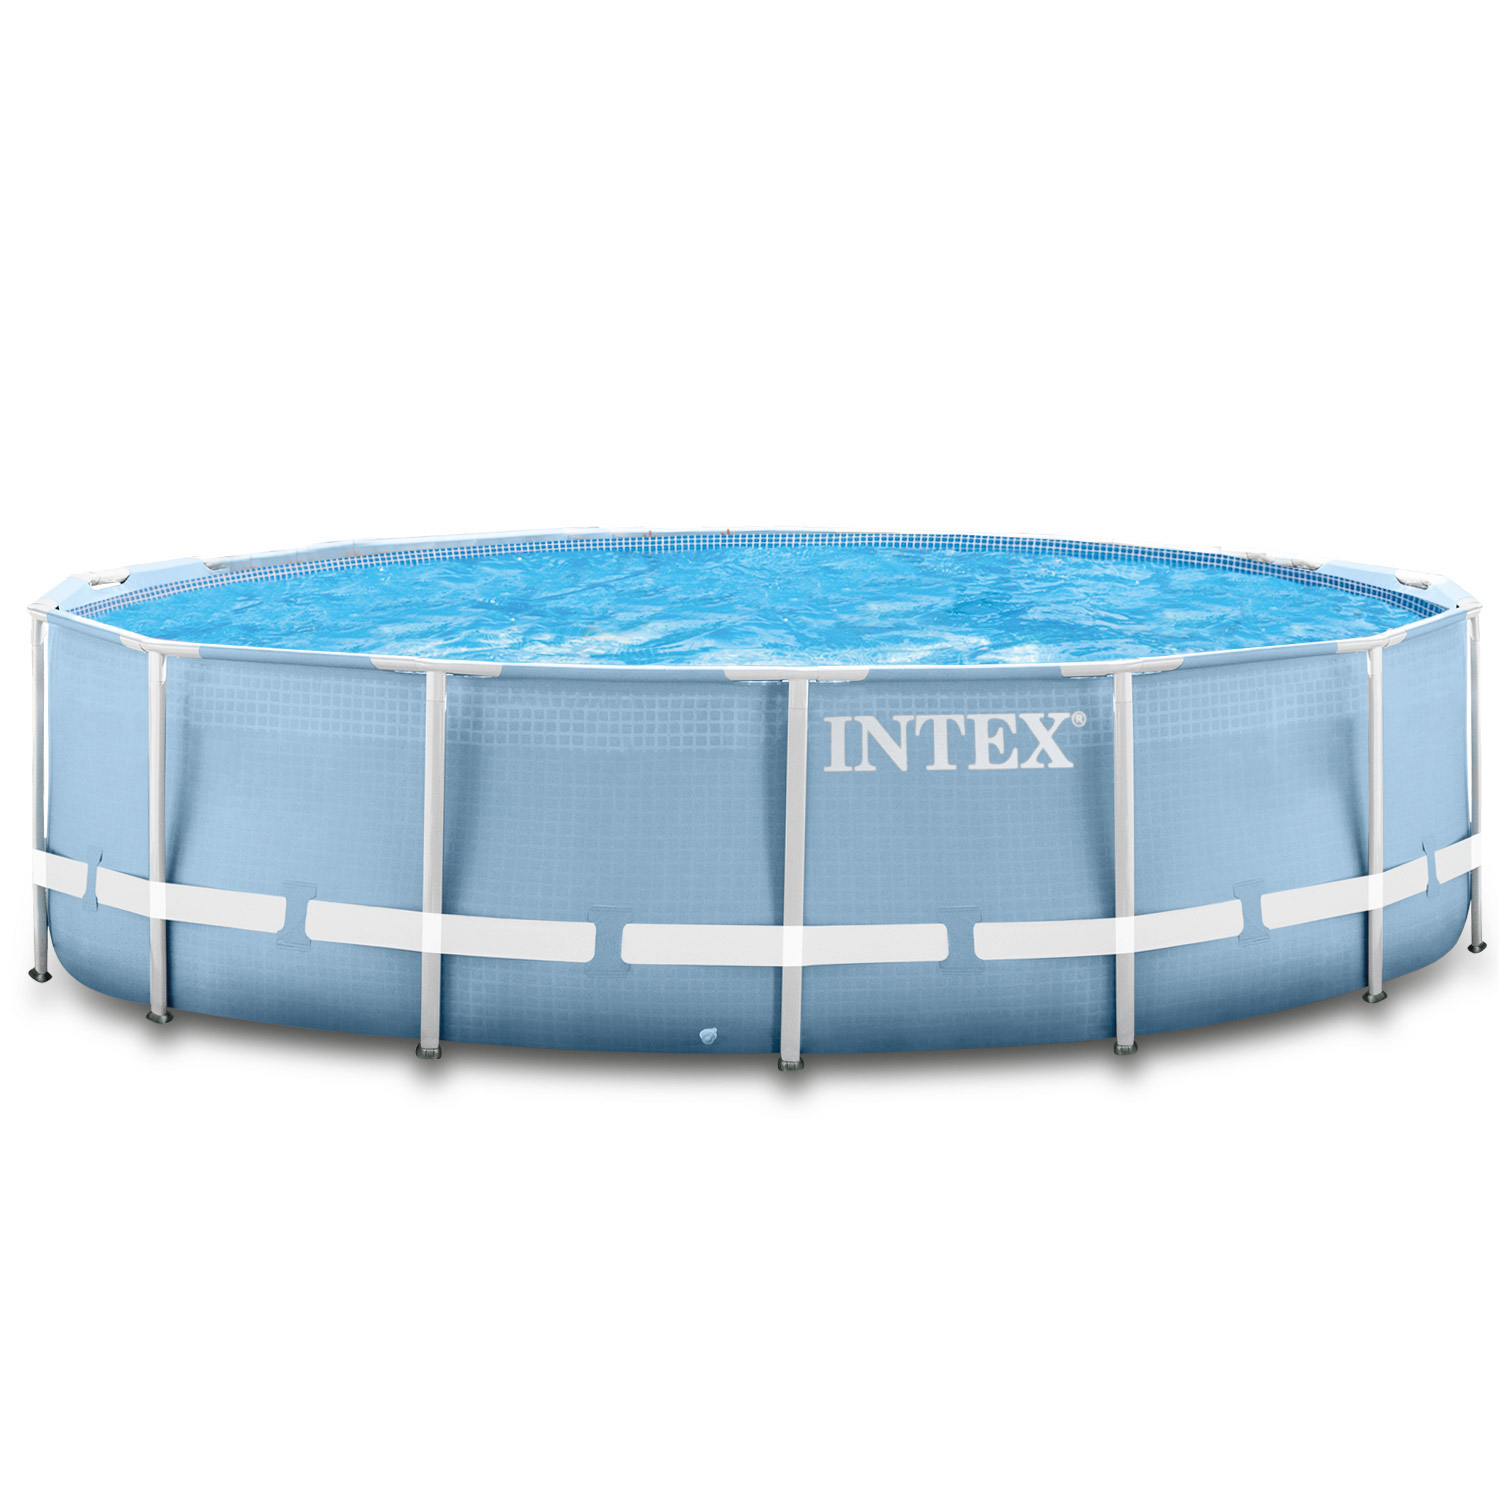 Intex swimming pool frame 457x122cm mit pumpe leiter for Pool redesign